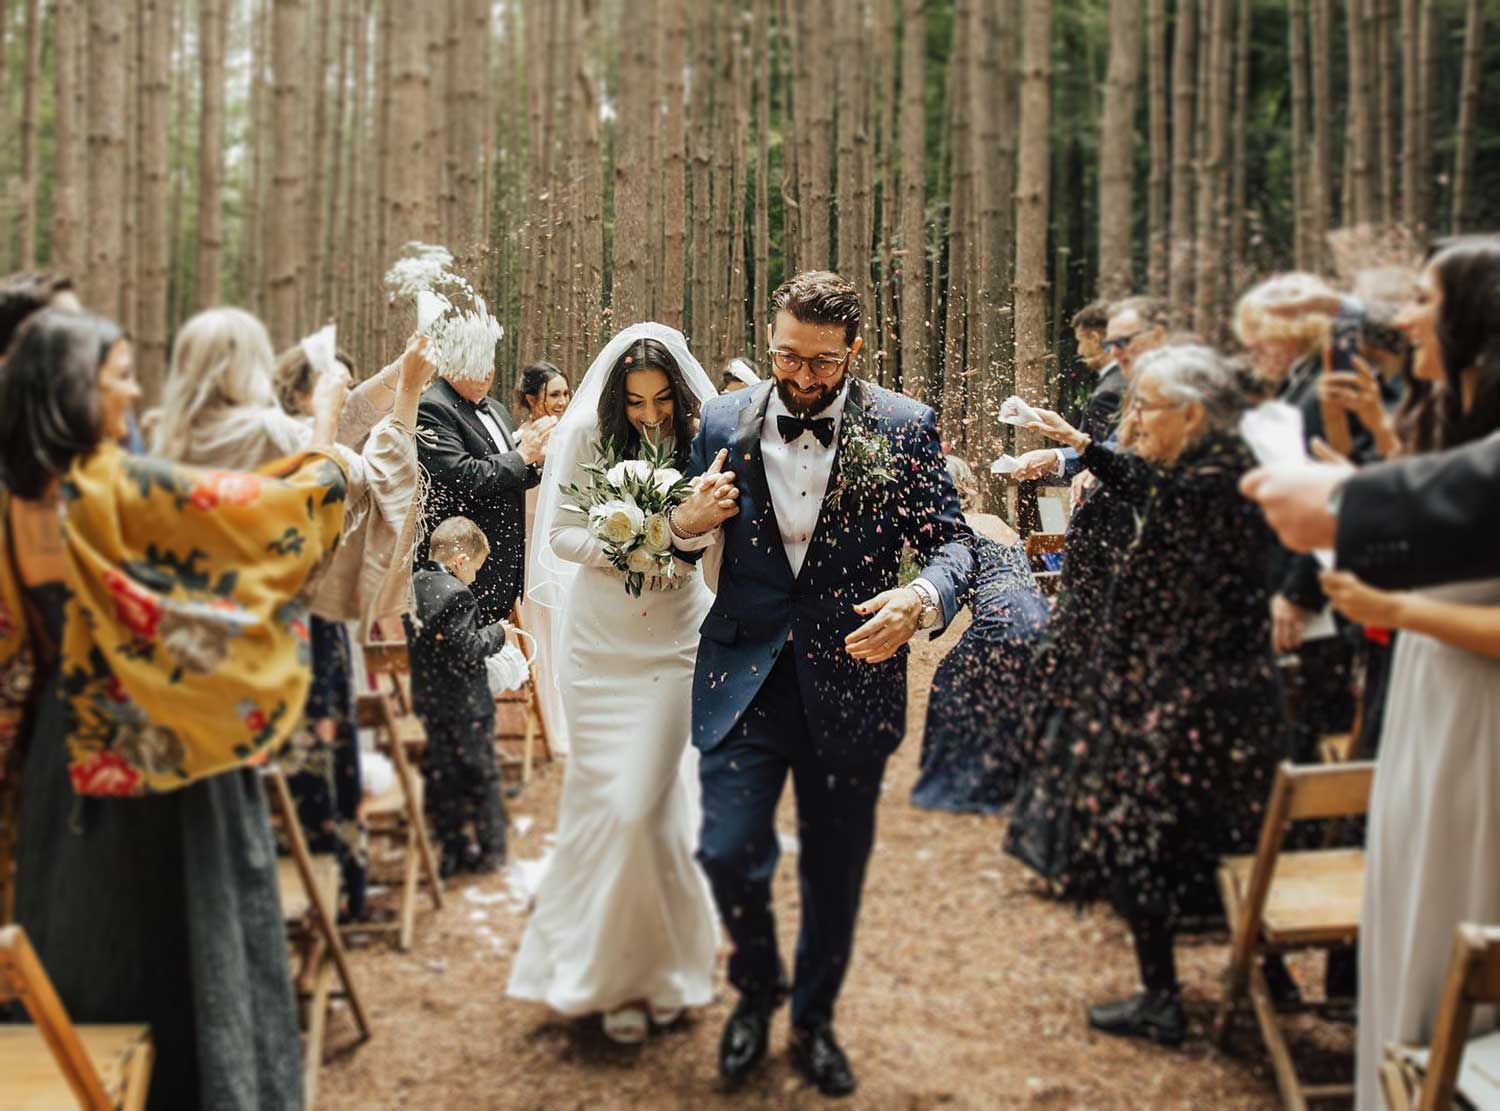 Natural wedding ceremony in the forest